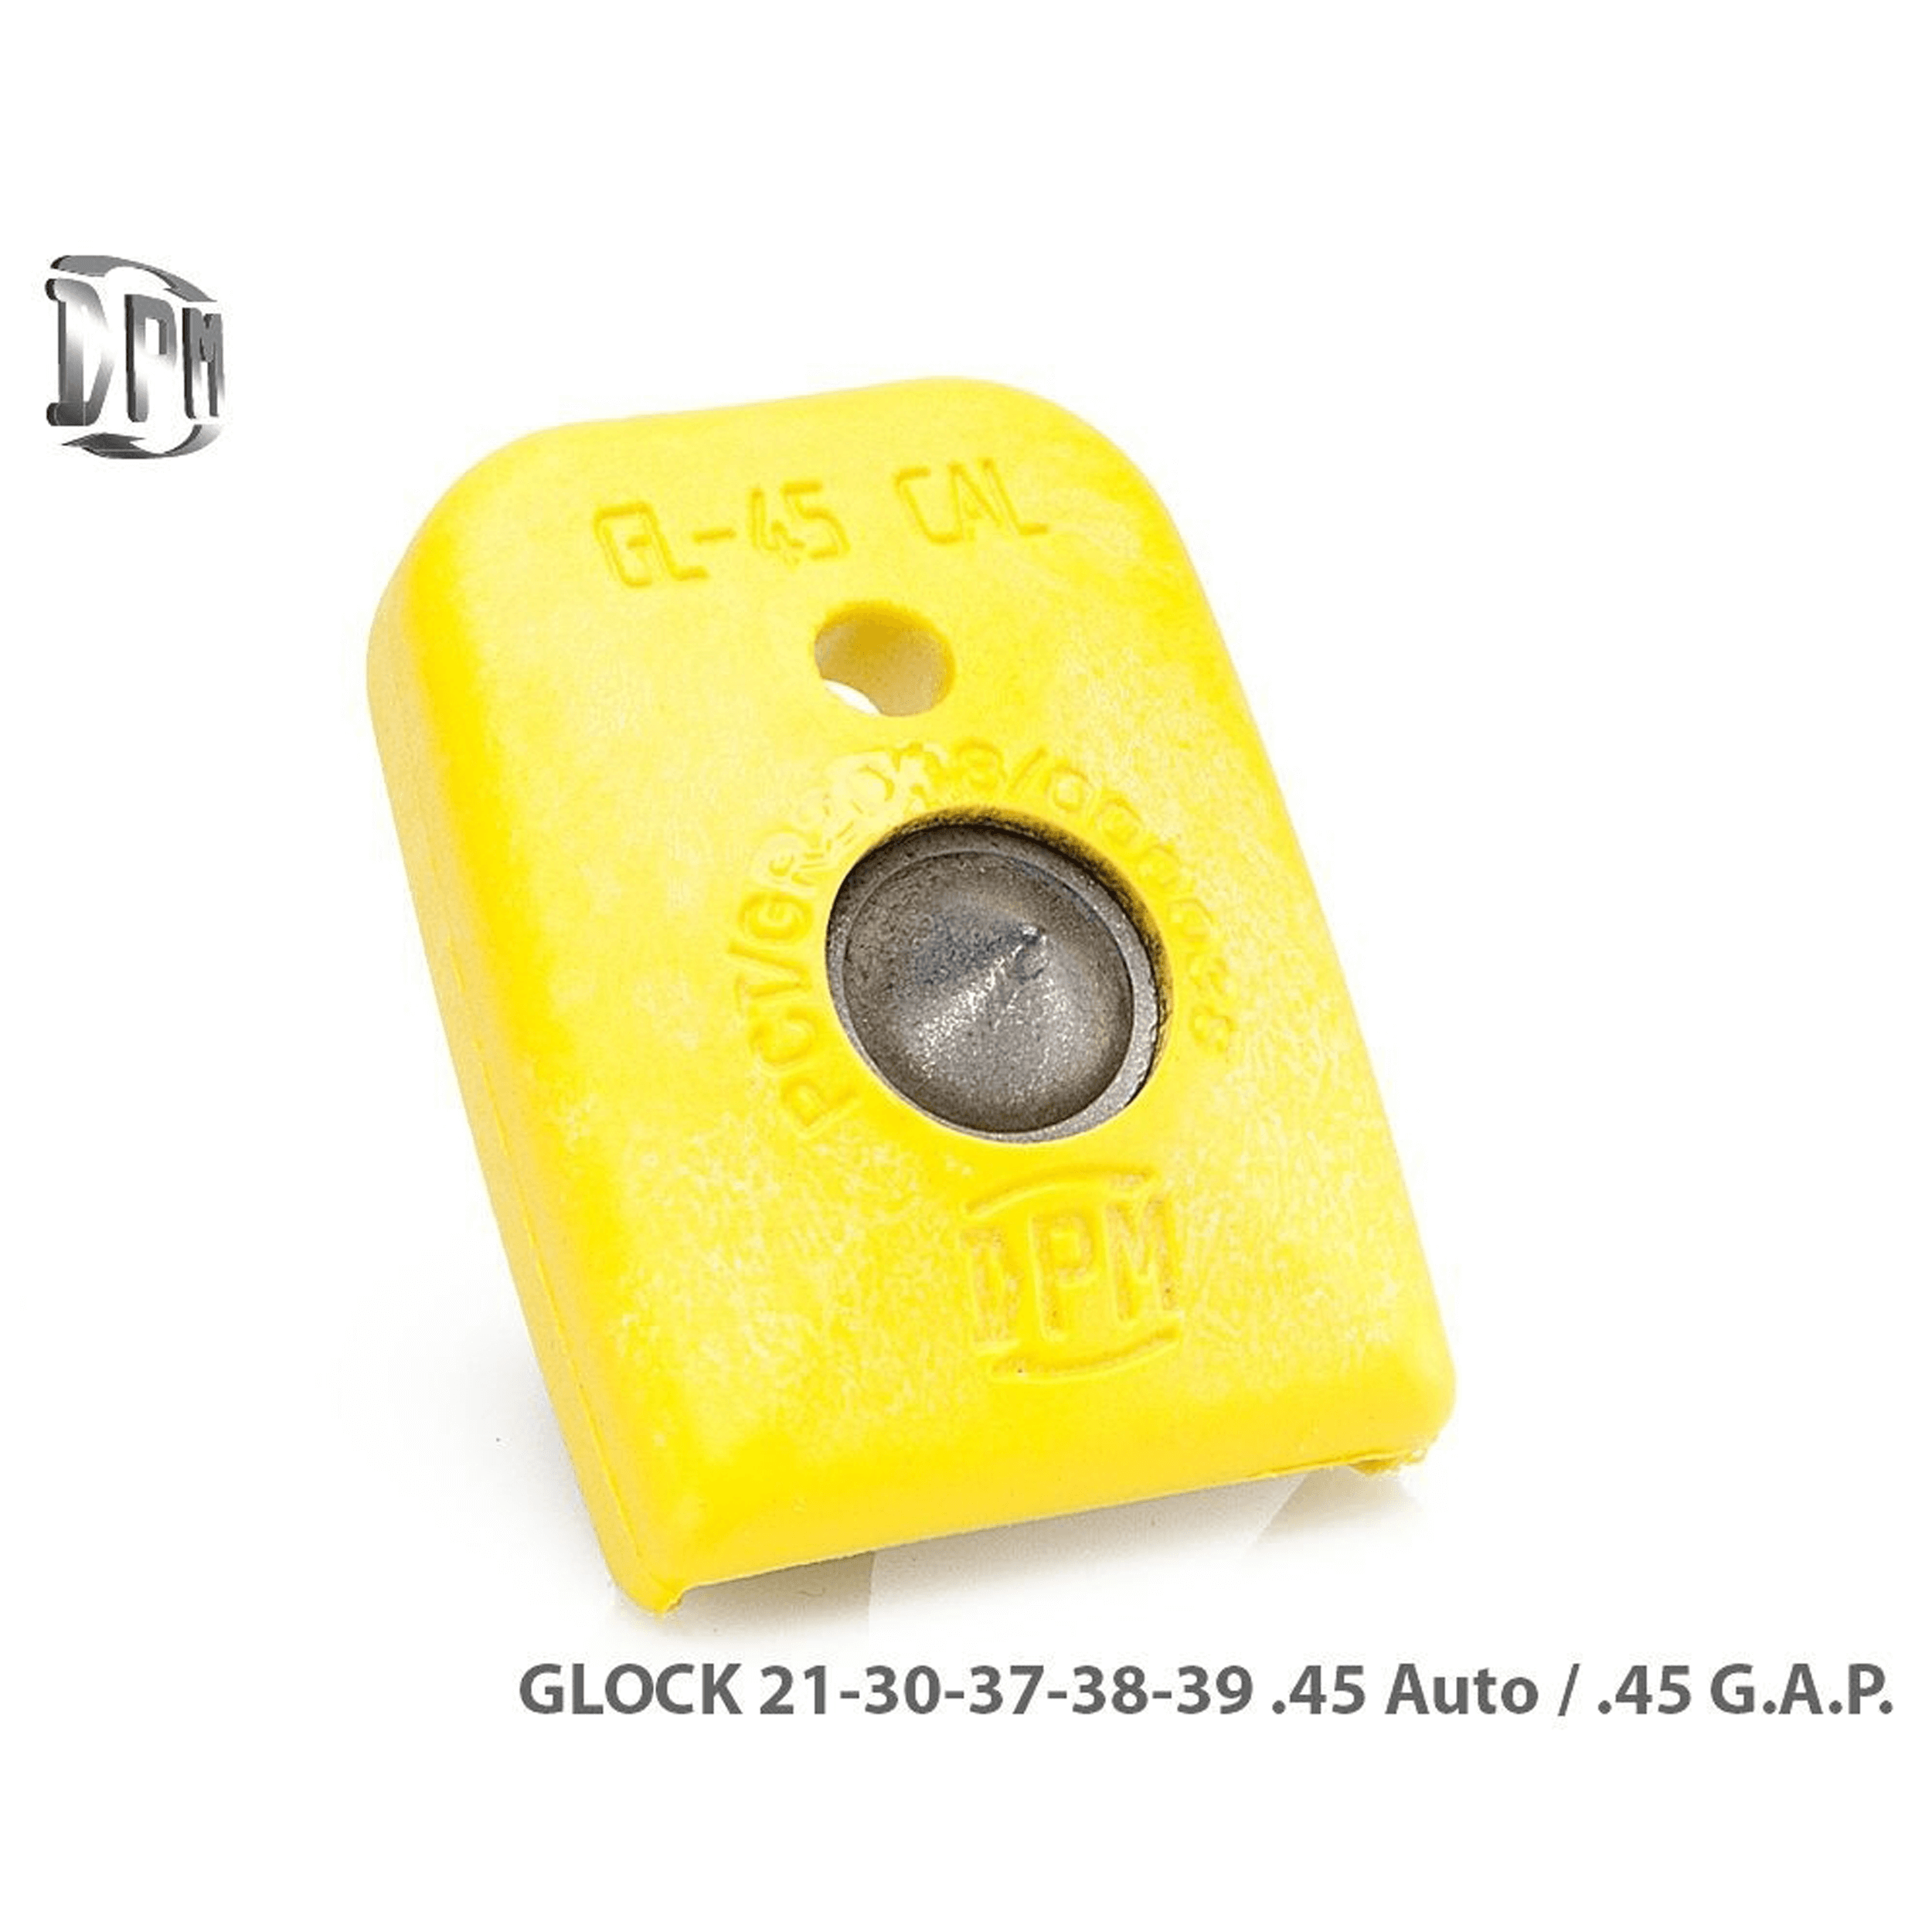 GLOCK 21 .45ACP  FLOORPLATE - GLASS BREAKER